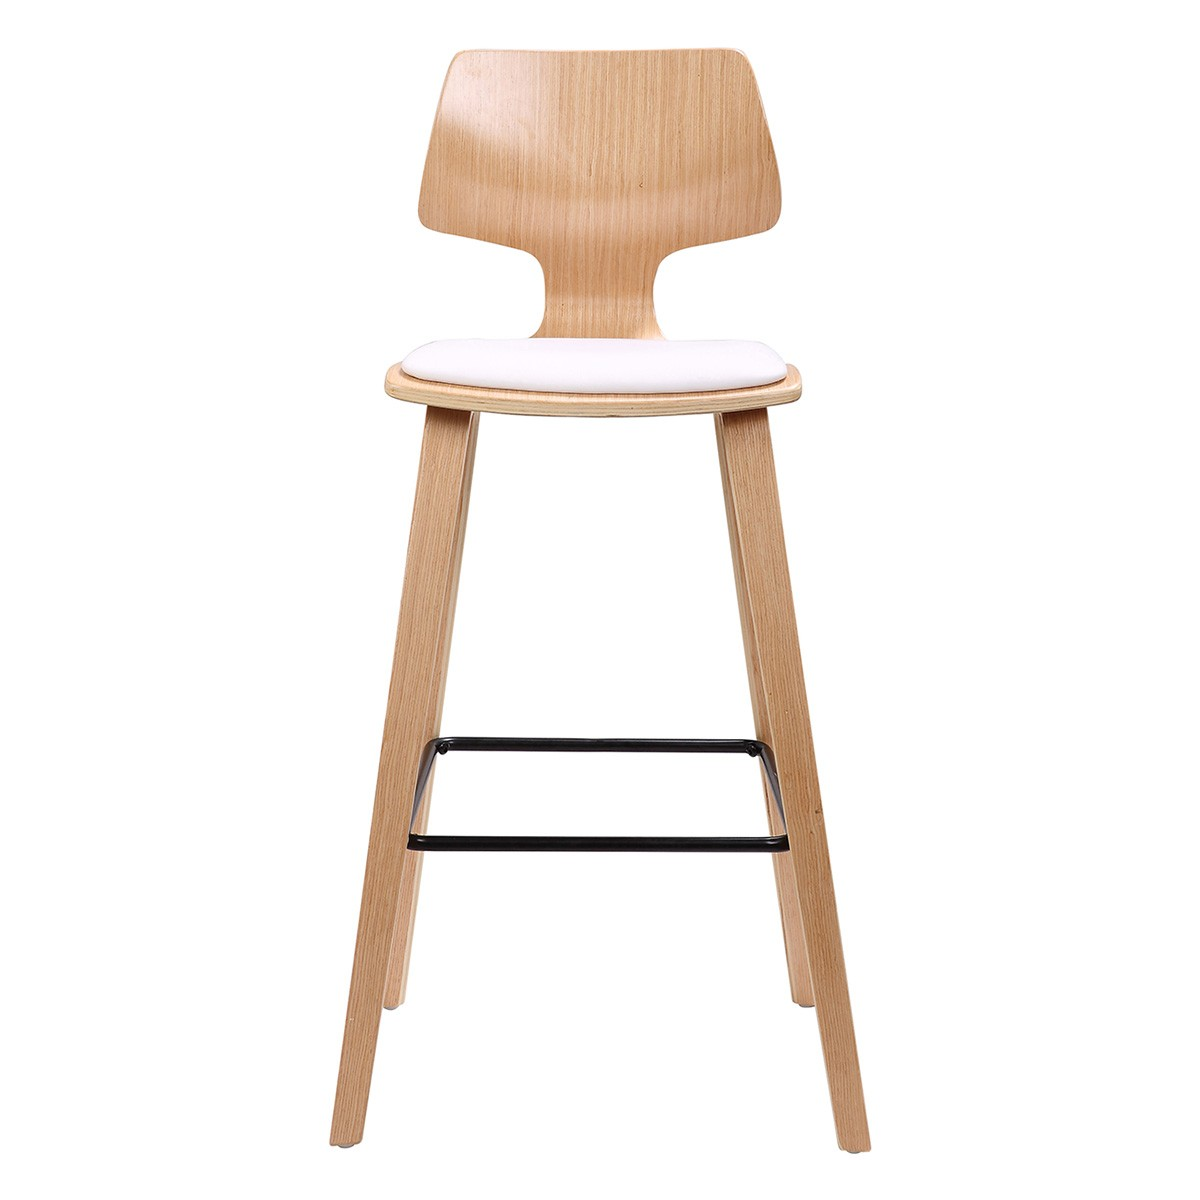 Hourglass Wooden Bar Chair with PU Seat